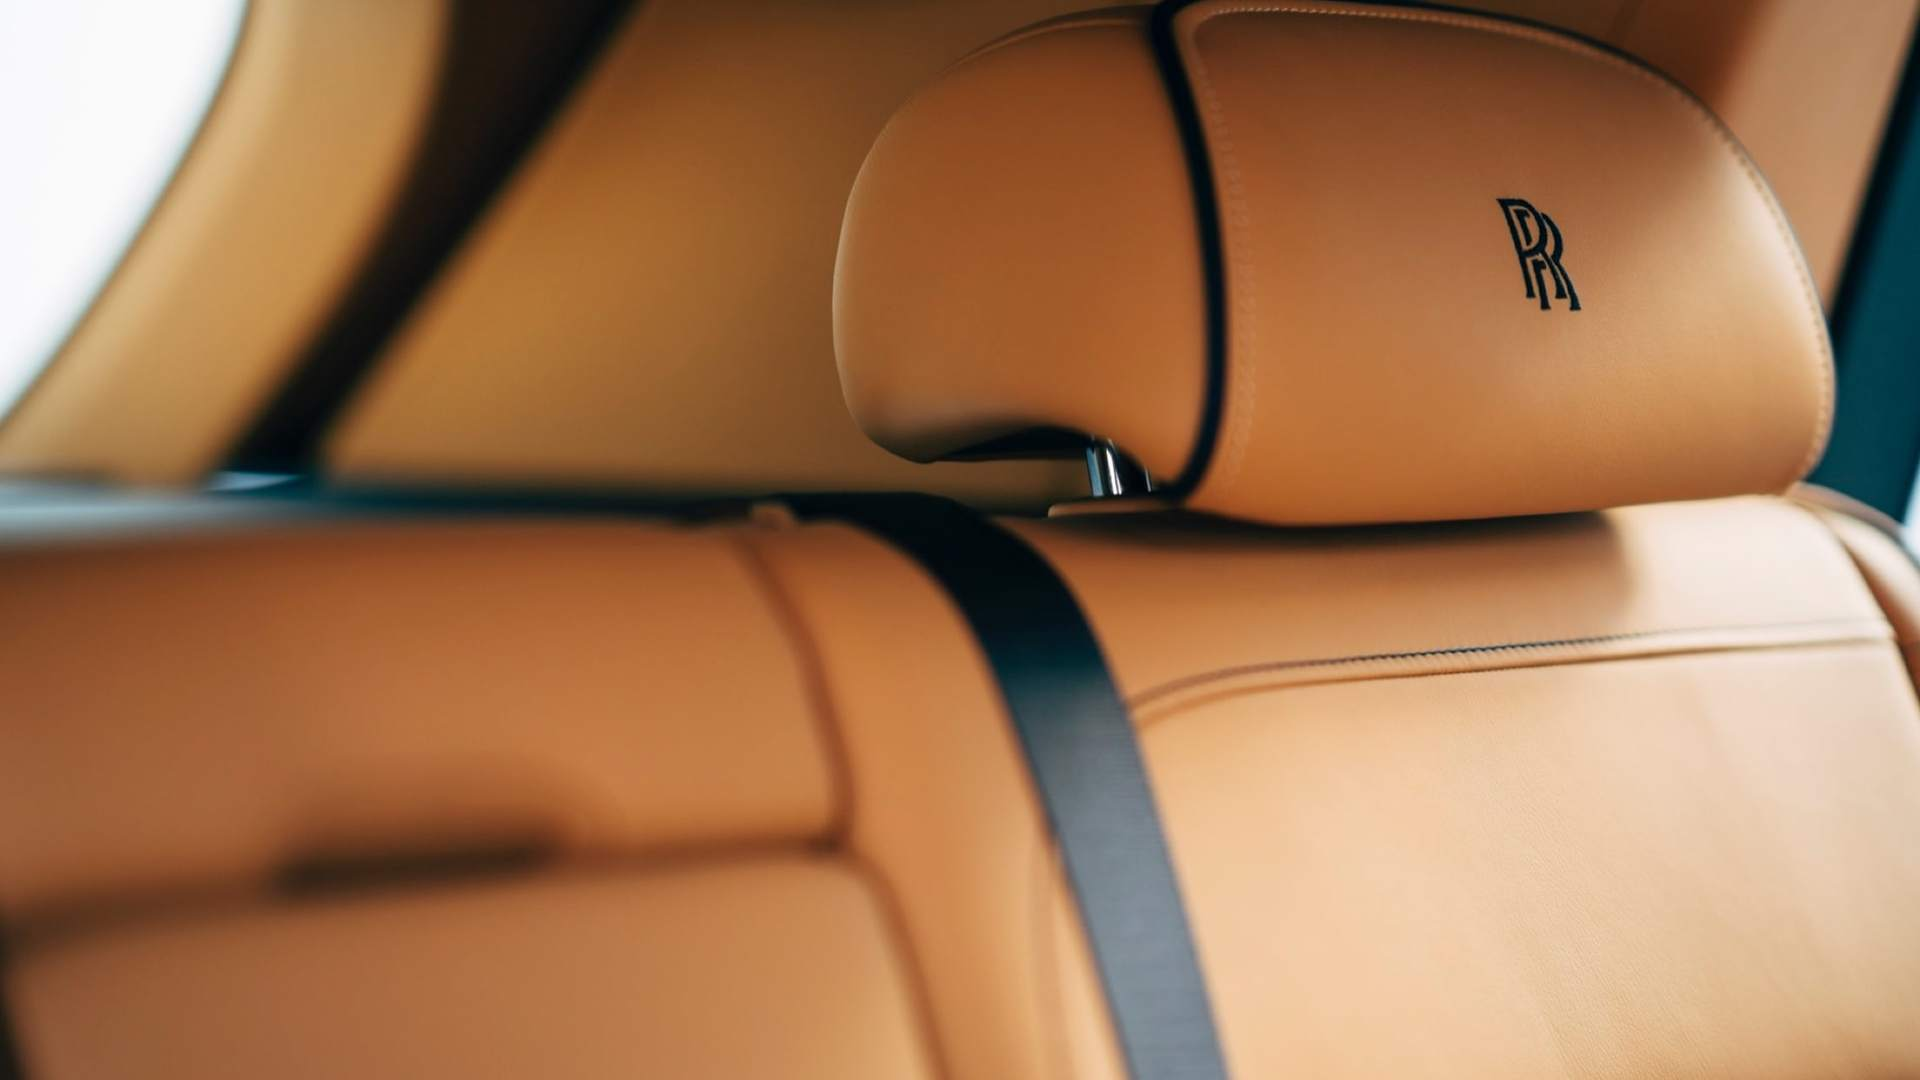 The monogrammed headrest of a Rolls-Royce Cullinan motor car